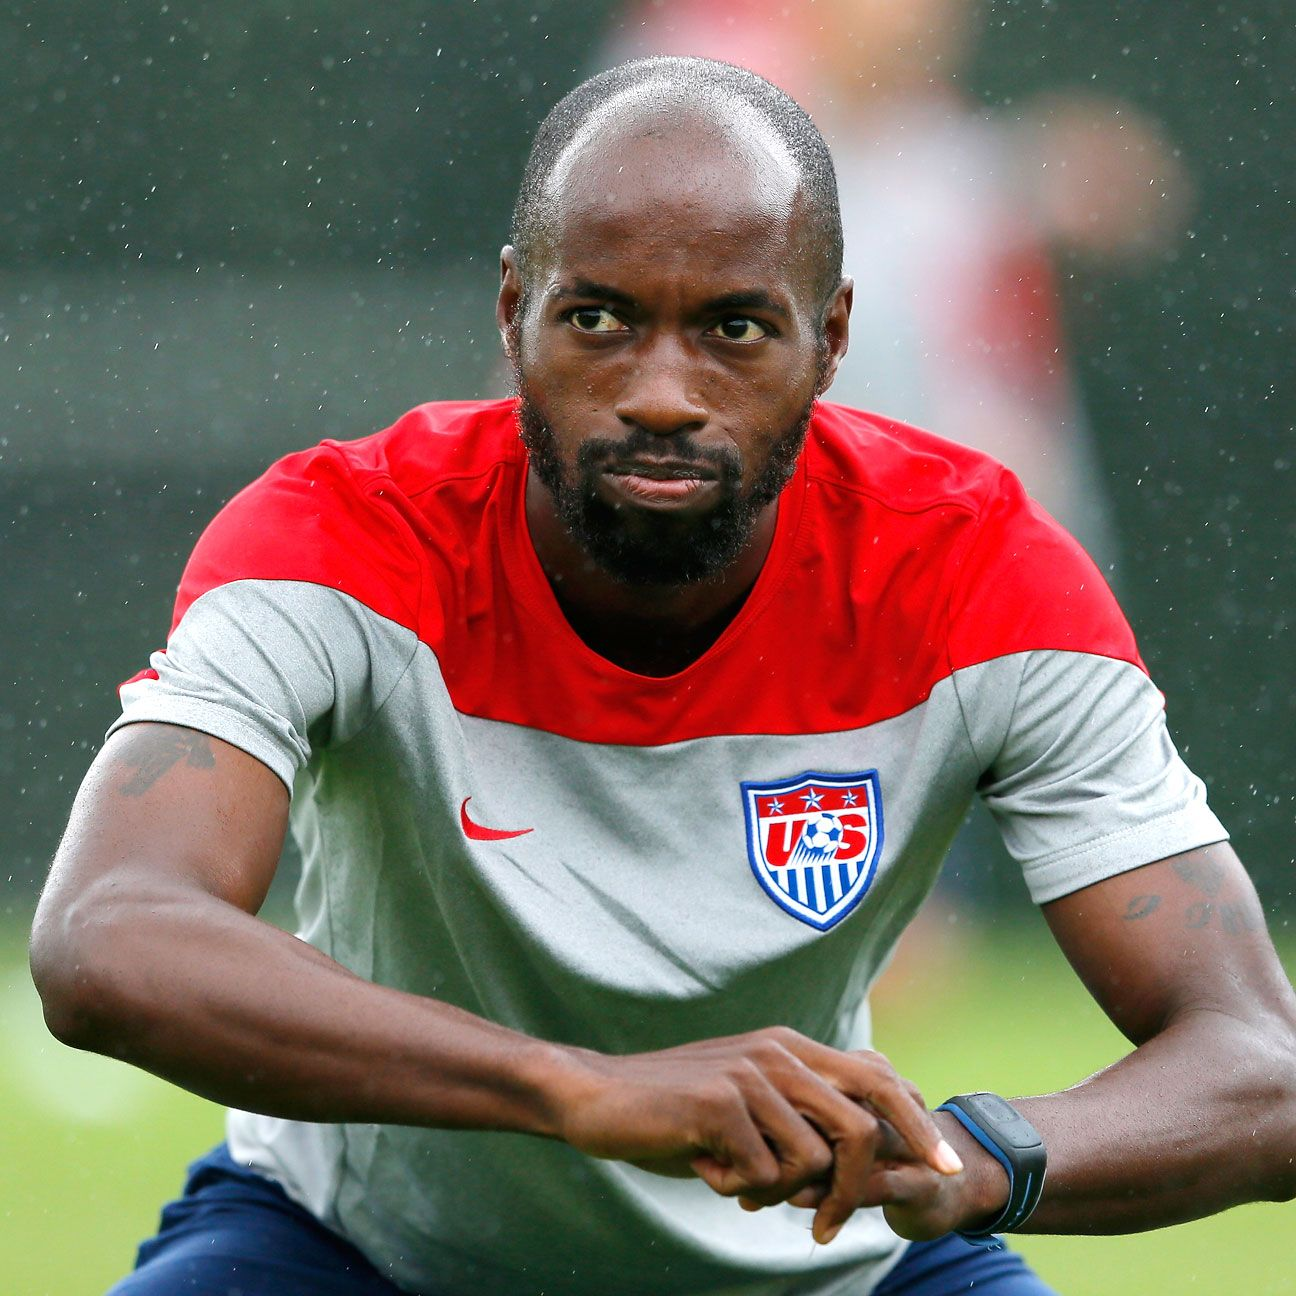 DaMarcus Beasley's experience and versatility make him essential if the U.S. is to get a result vs. Ghana.